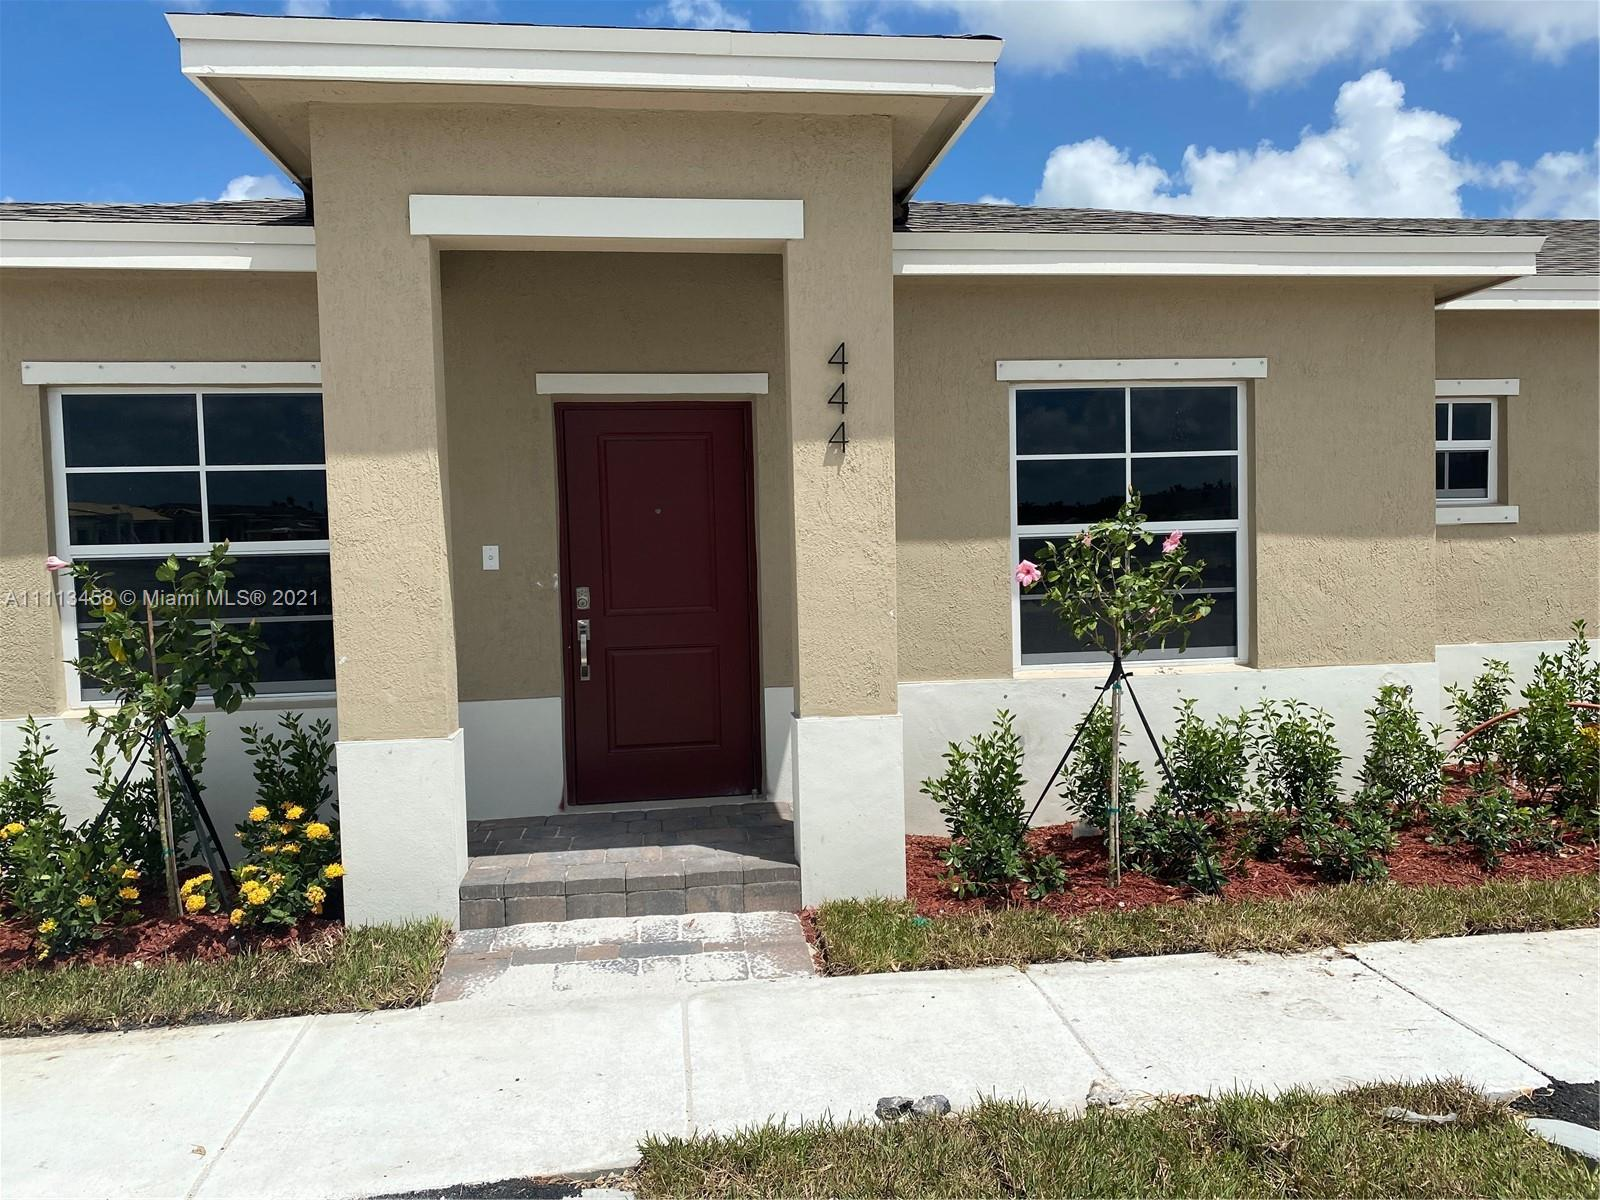 Residential For Sale at 444 Homestead